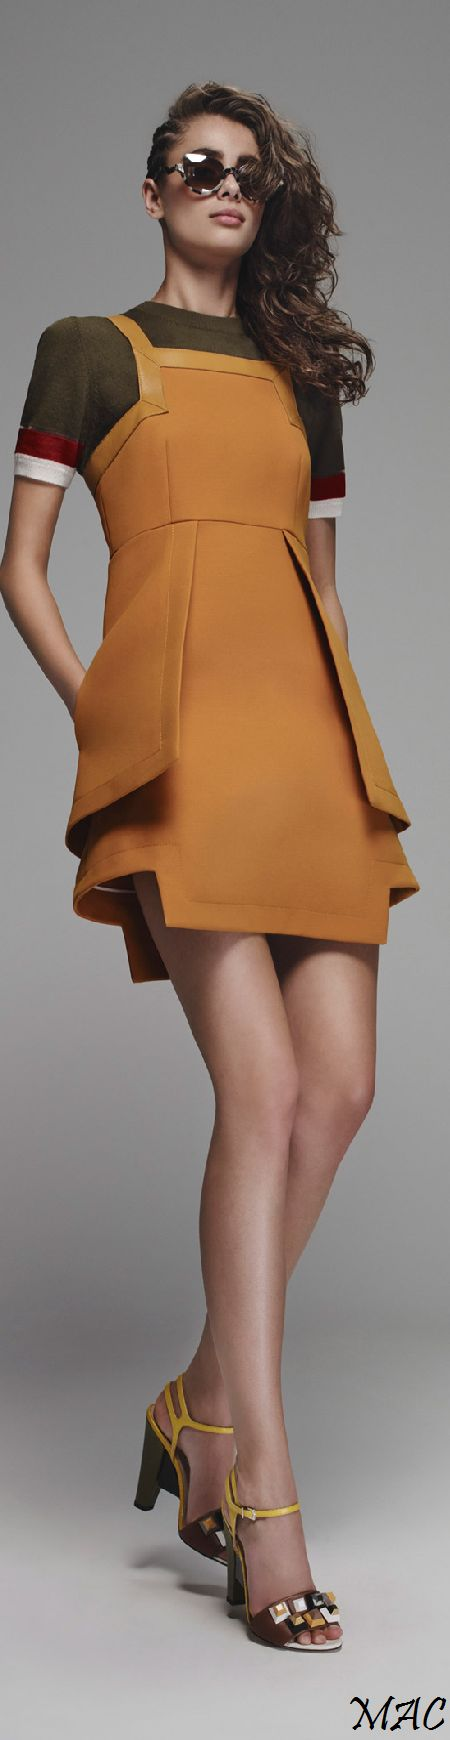 """Fendi, Resort 2016 - If the hemline on this were lengthened .... """"Even the most beautiful legs look better when the kneecap is covered"""" Edith head"""